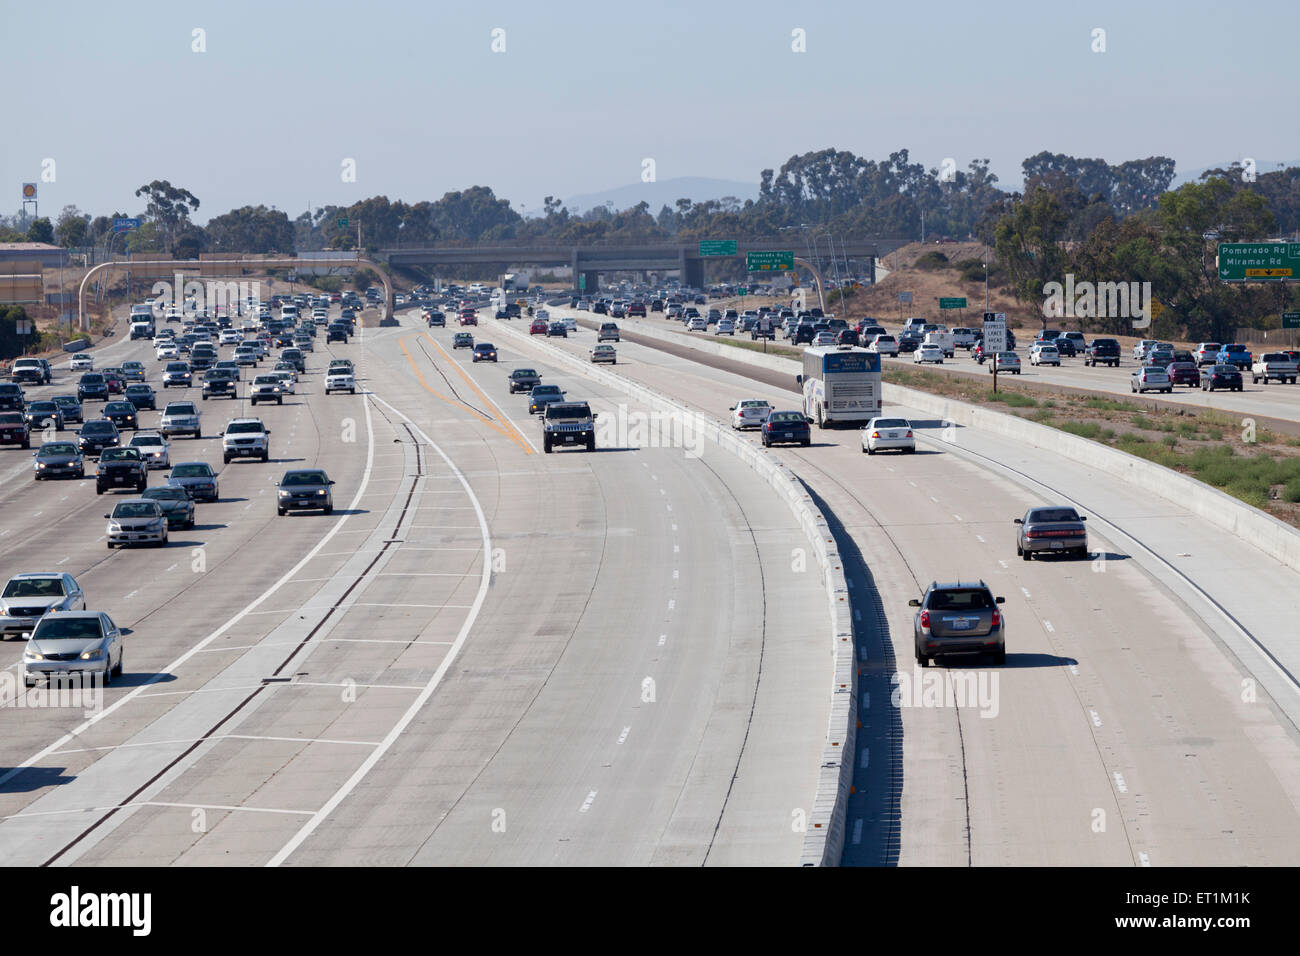 Carpool Lane Rules >> Hov Carpool Lanes Stock Photo 83630895 Alamy